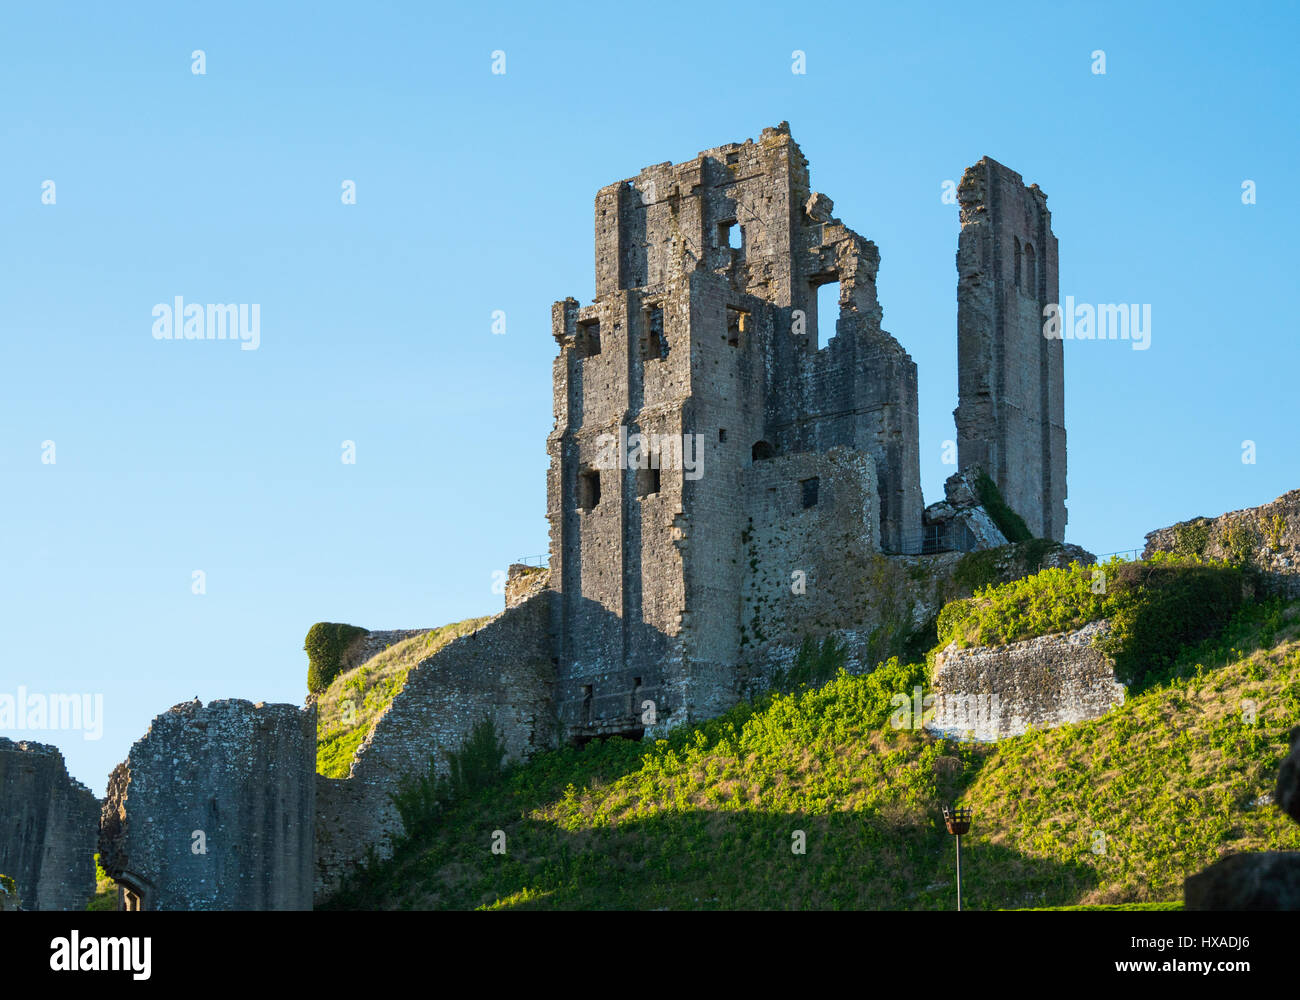 The historic remainds of Corfe Castle, Corfe Castle, Isle of Purbeck, Dorset, UK - Stock Image